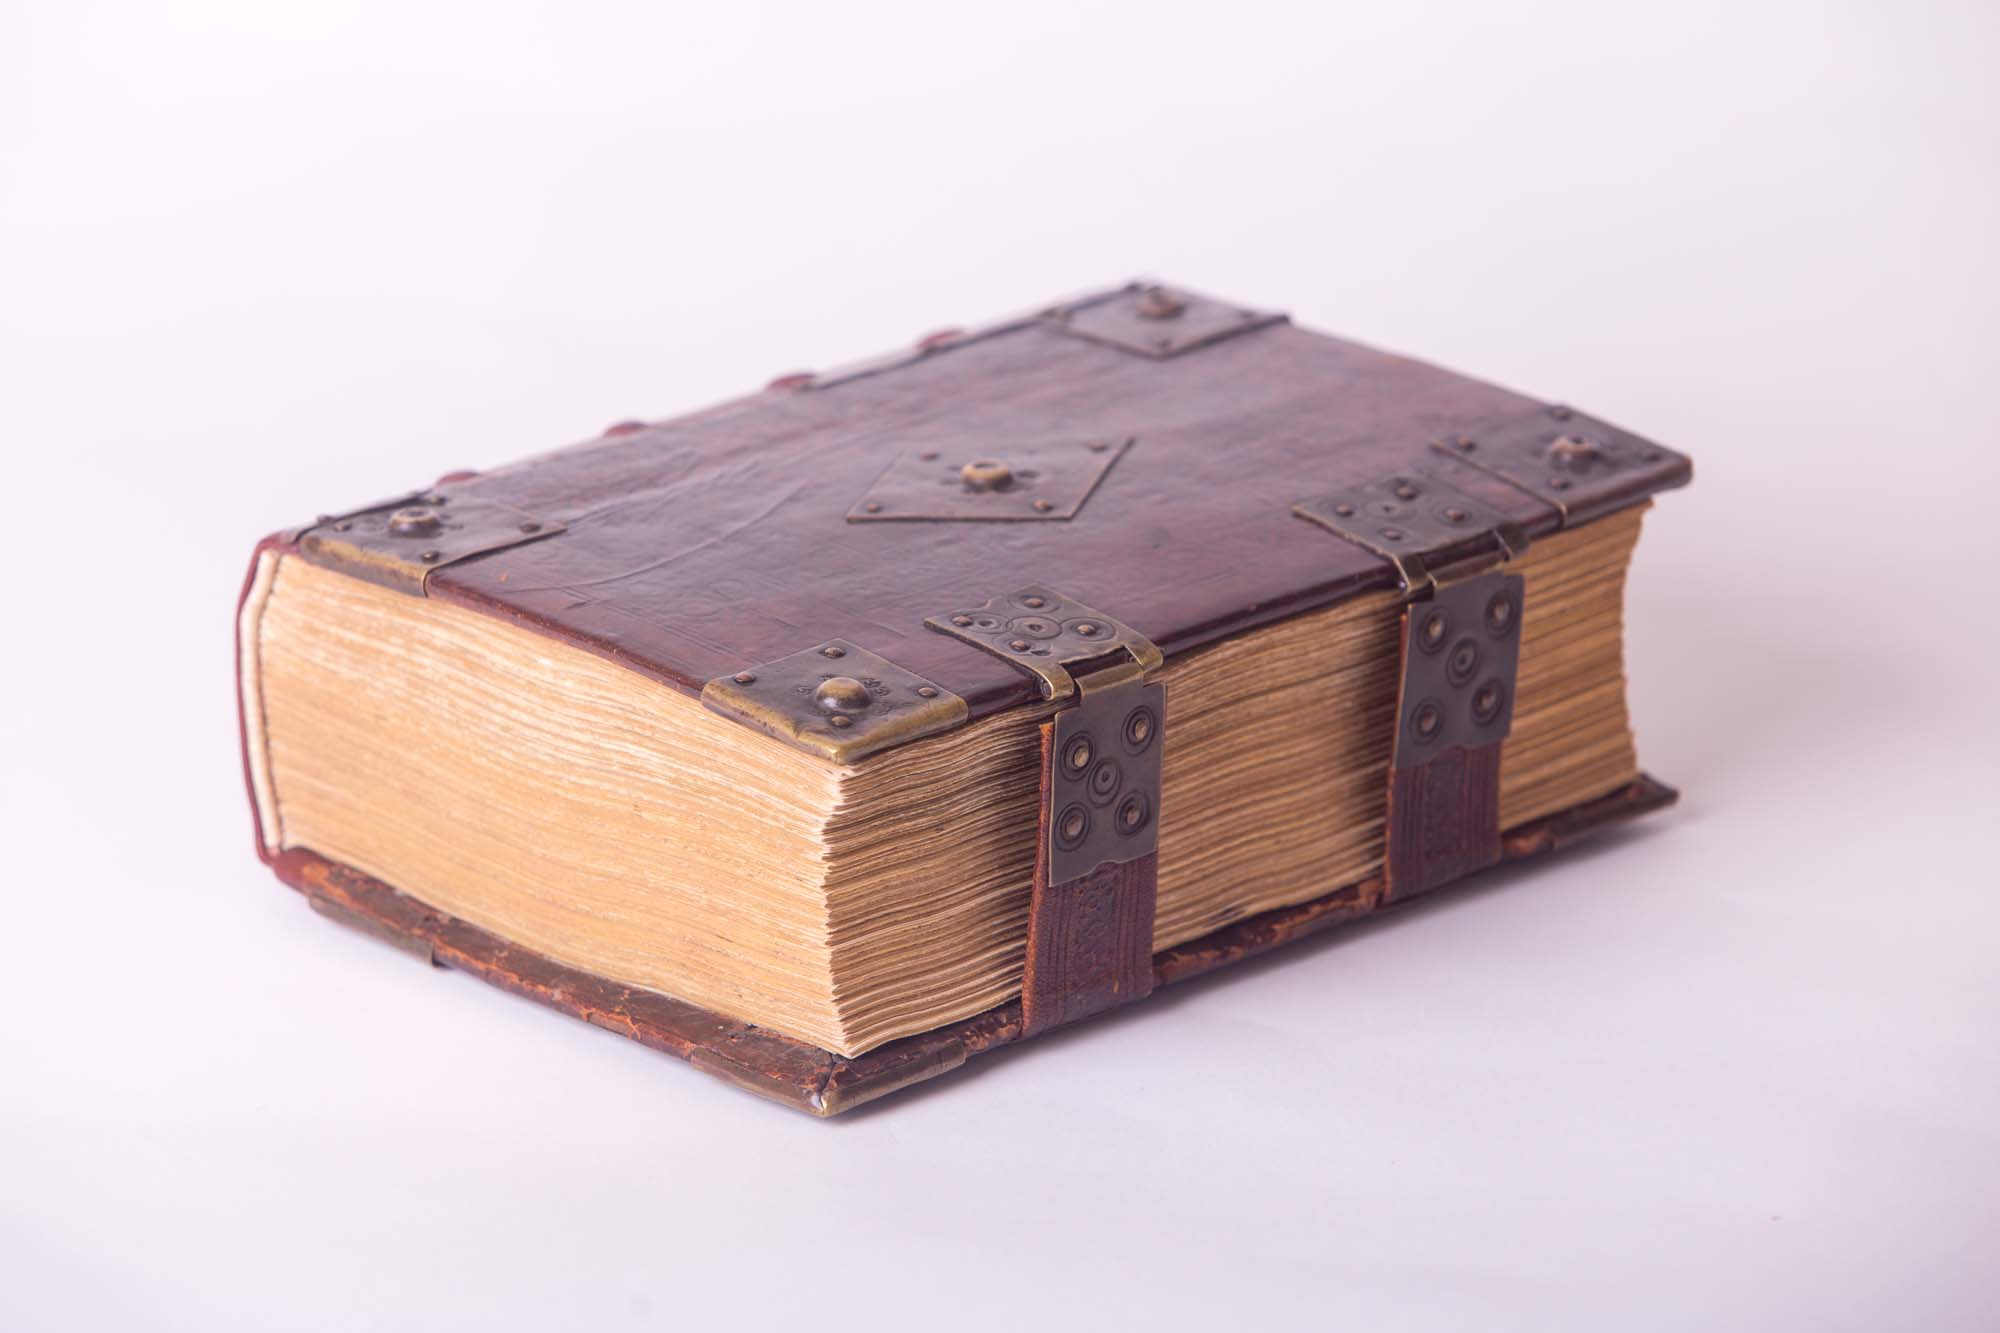 a photo of a leather bond book with hinges and locks